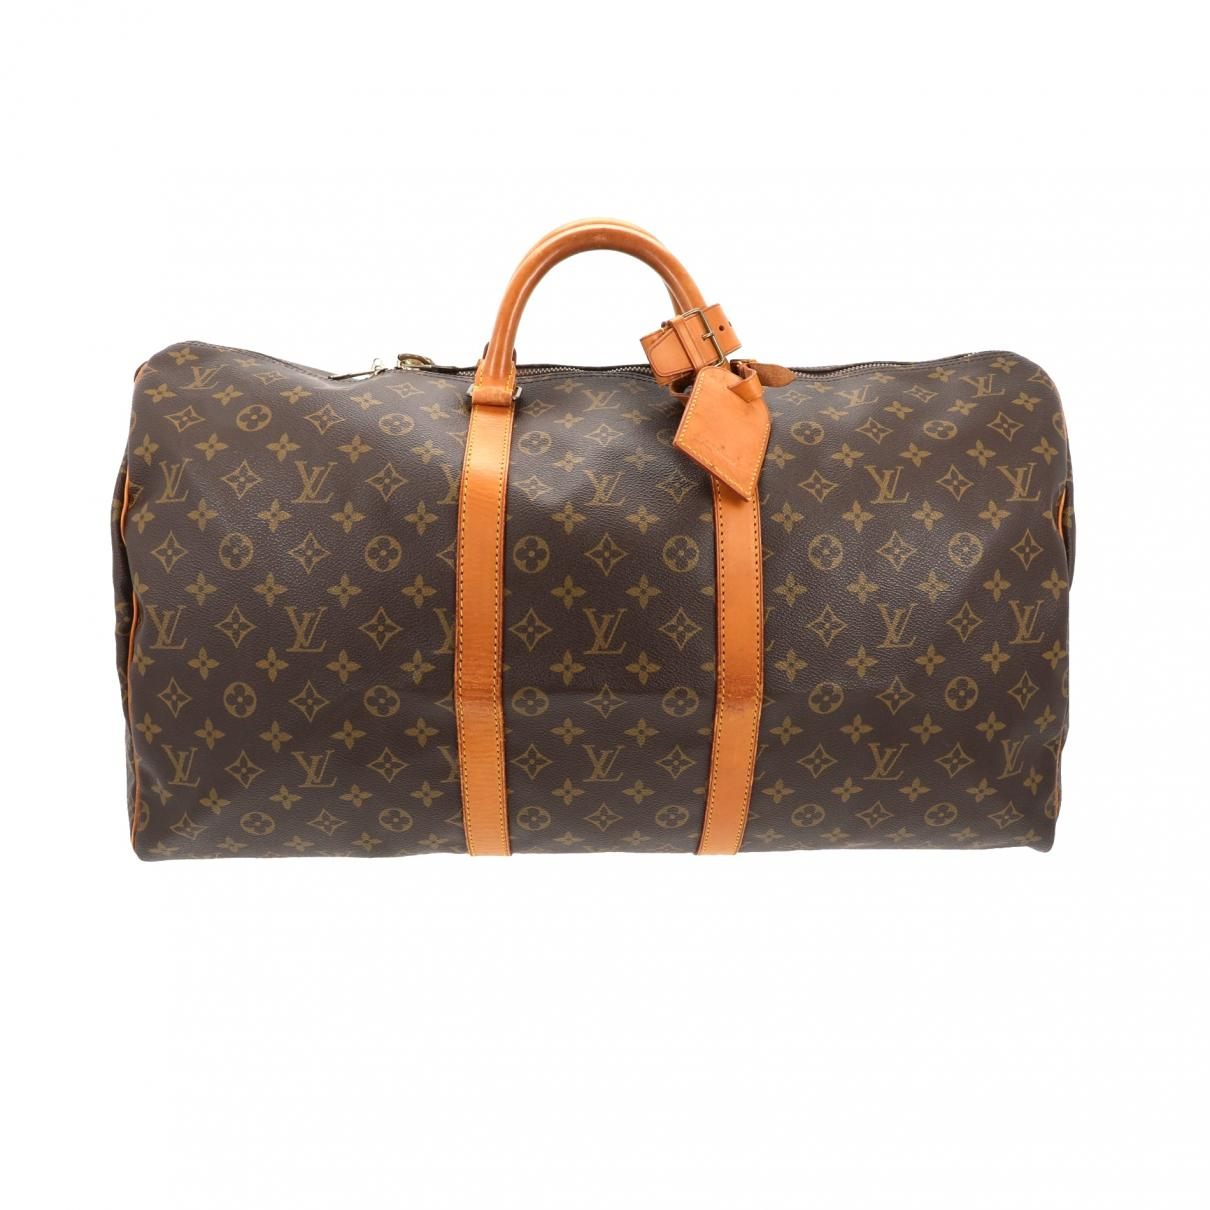 cb617bc51745 Lyst - Louis Vuitton Pre-owned Keepall Brown Leather Travel Bags in ...